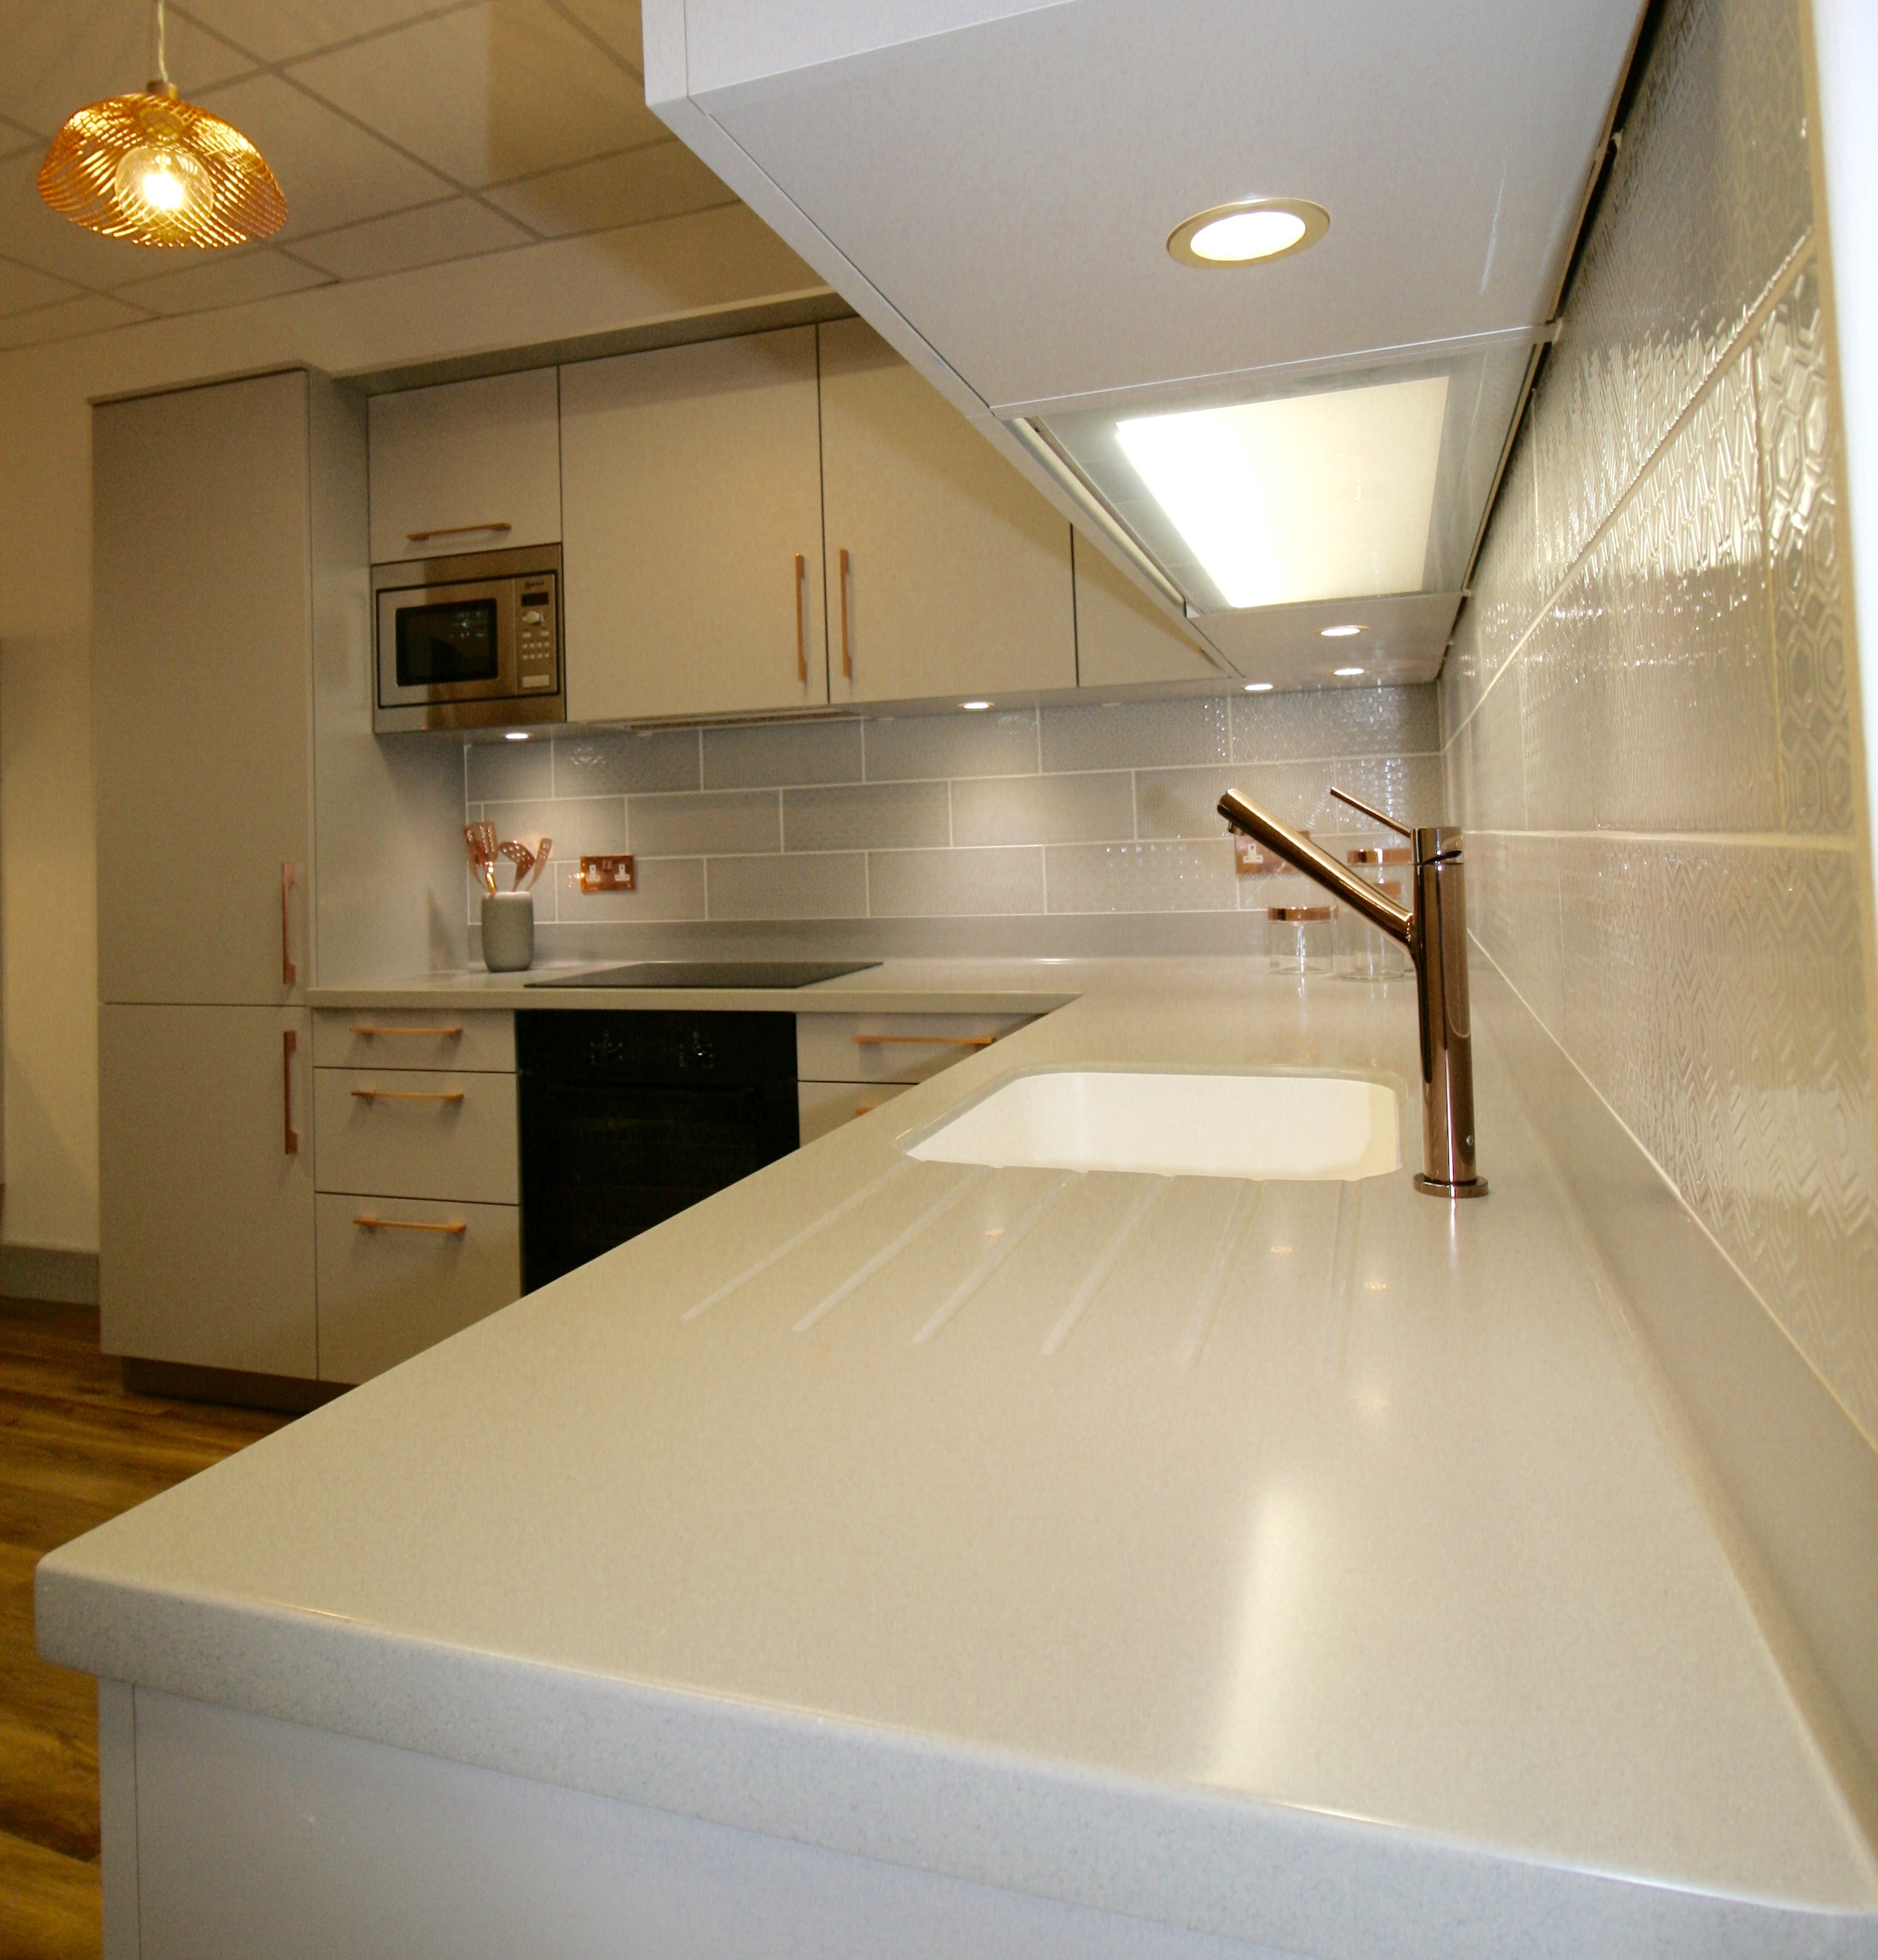 Dove grey Corian worktop with Designer White moulded sink and Avia polished copper tap